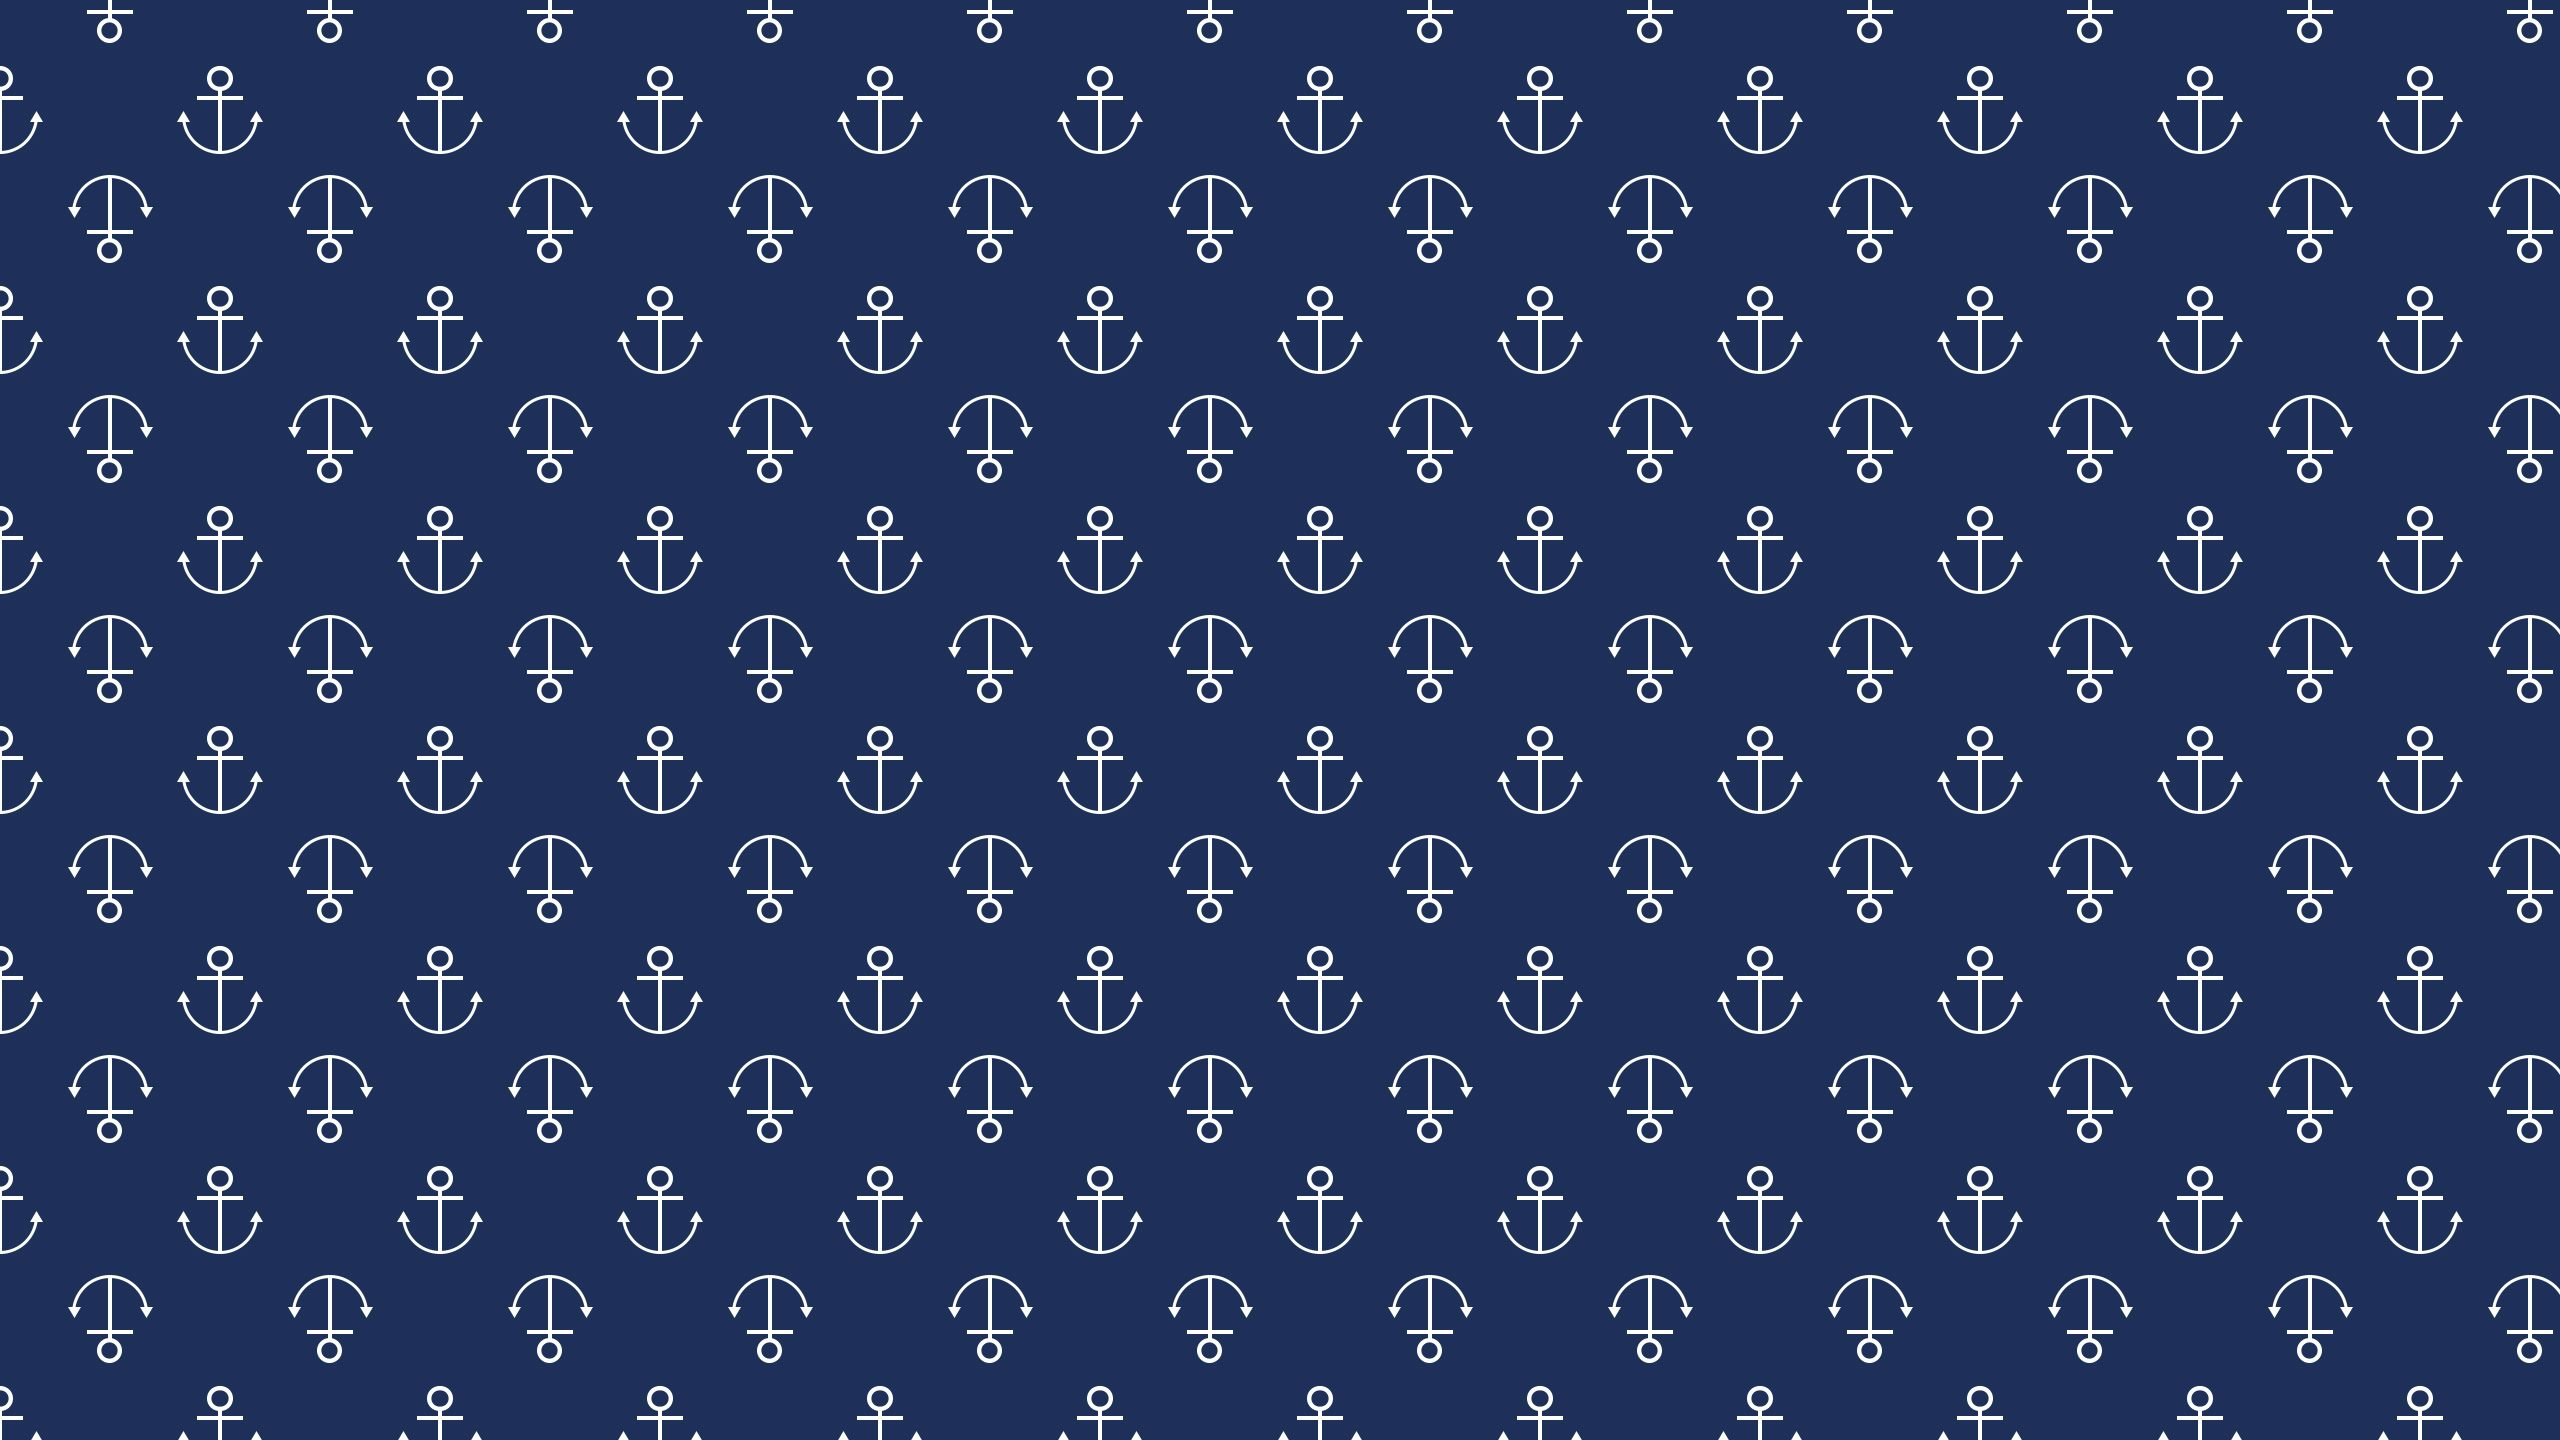 Free Anchor Wallpapers To Download Mfcreative Anchor Wallpaper Anchor Background Cute Wallpaper For Phone